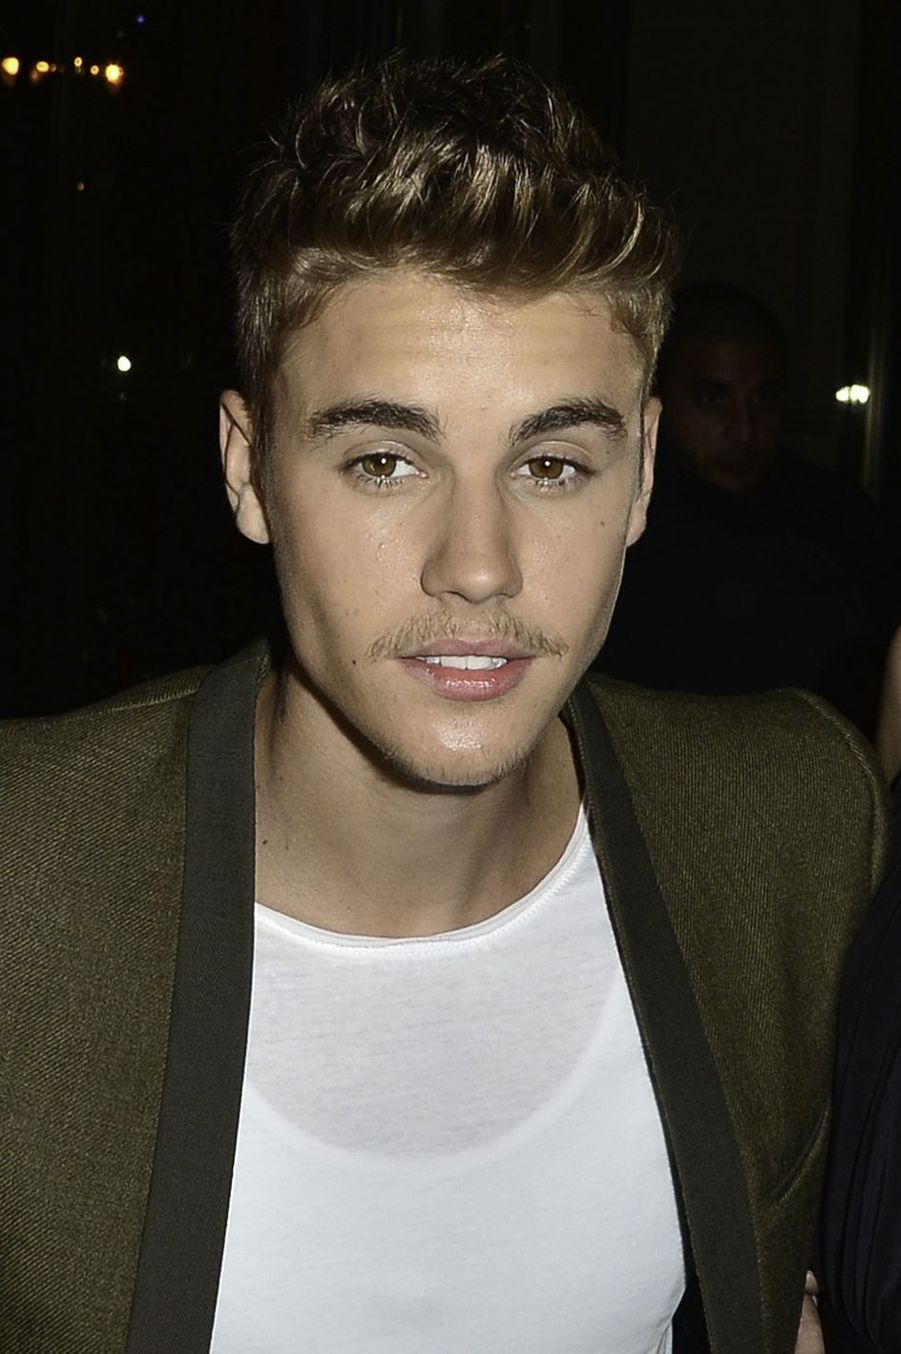 Justin Bieber lors de la Fashion Week de Paris en septembre 2014